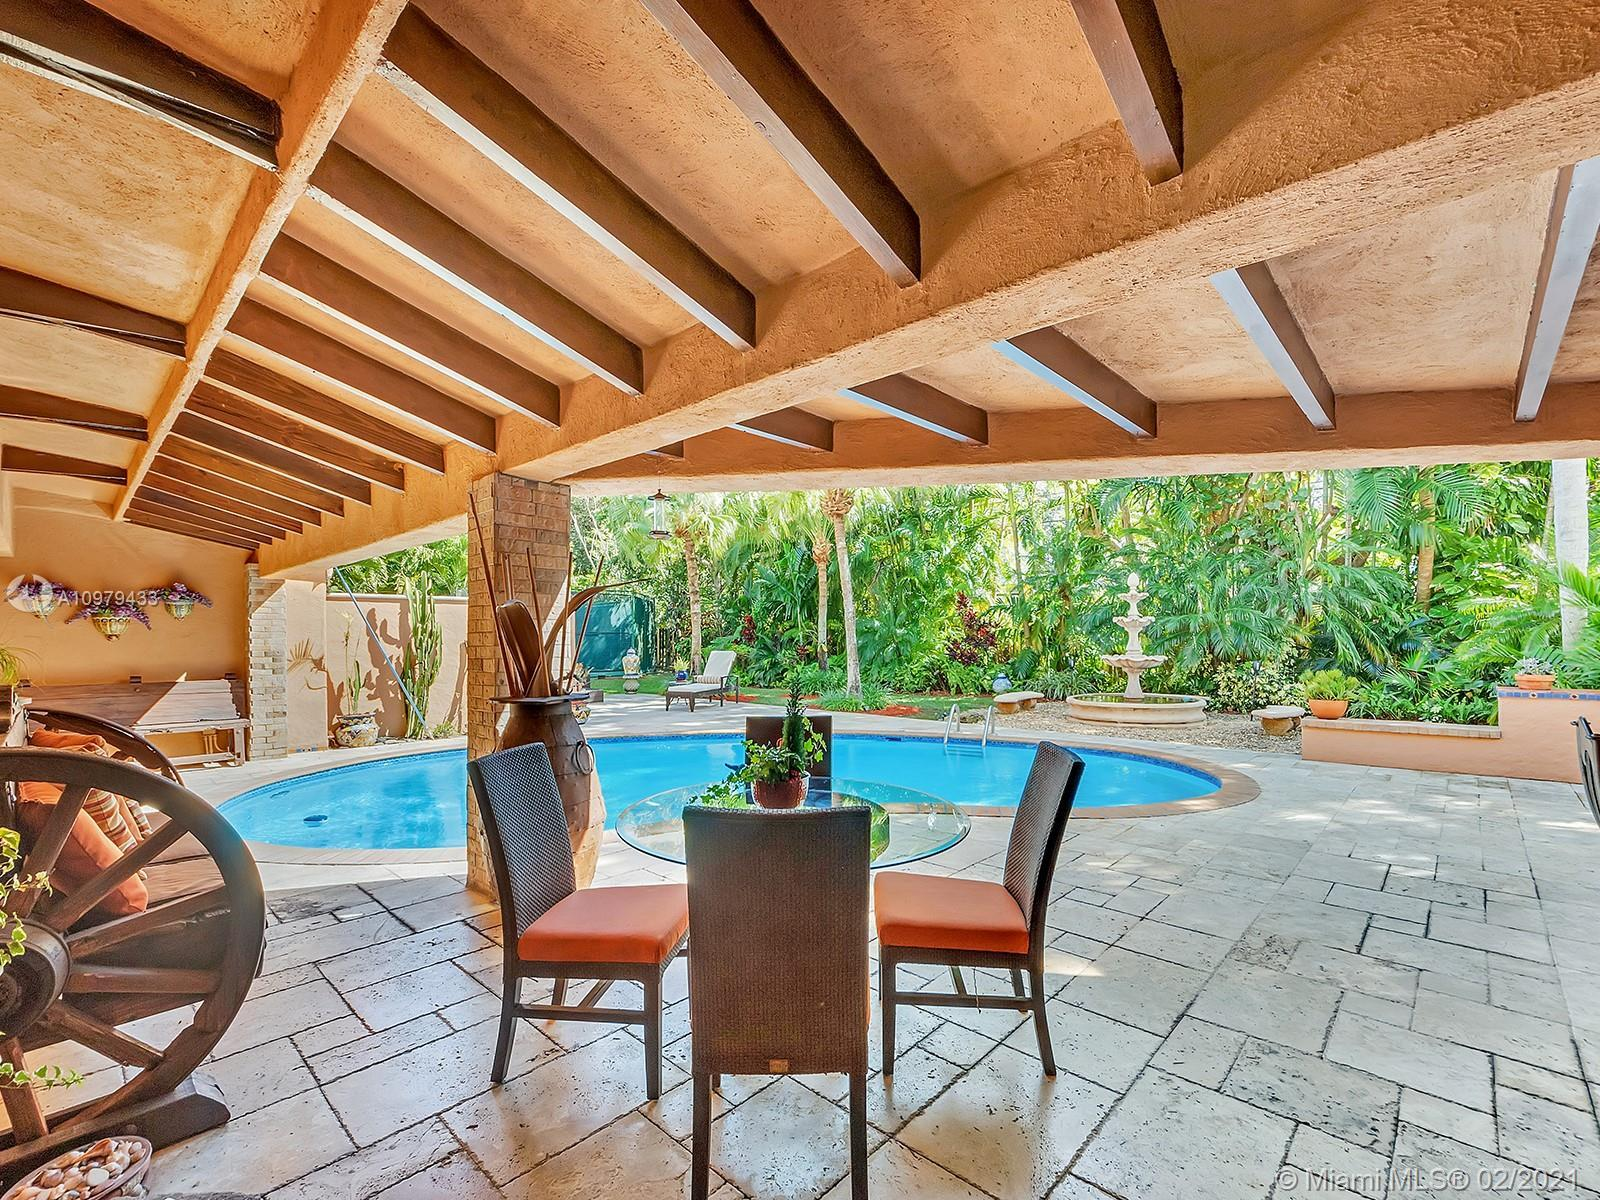 Tropical Paradise in the Heart of Pinecrest! Prepare your heart and soul for a sanctuary that blurs